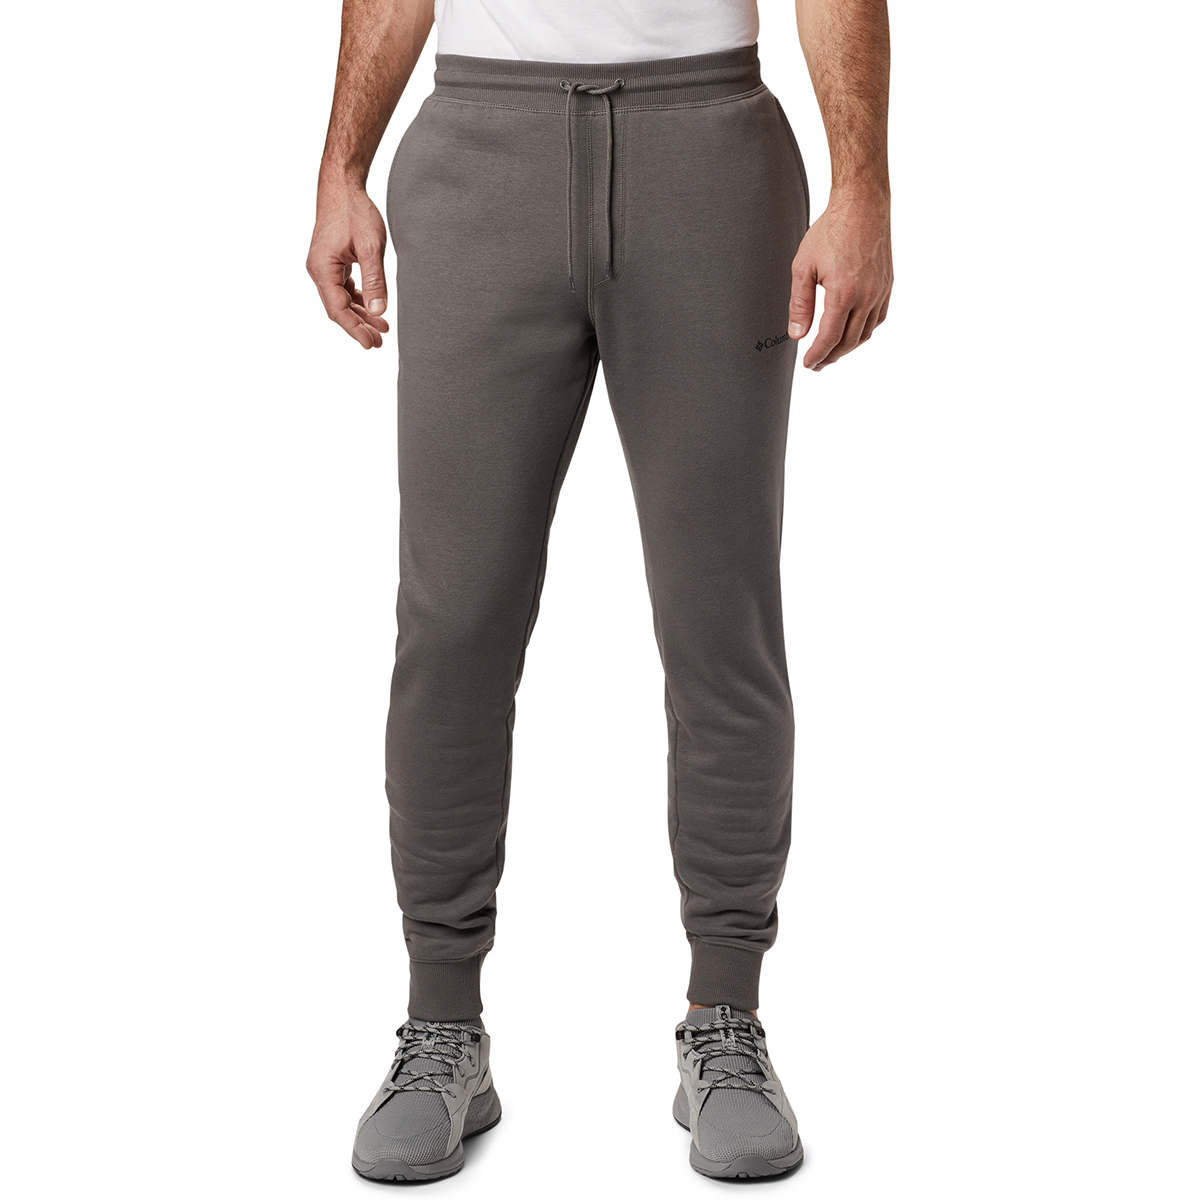 Columbia Men's Logo Fleece Jogger Pants - Black, M